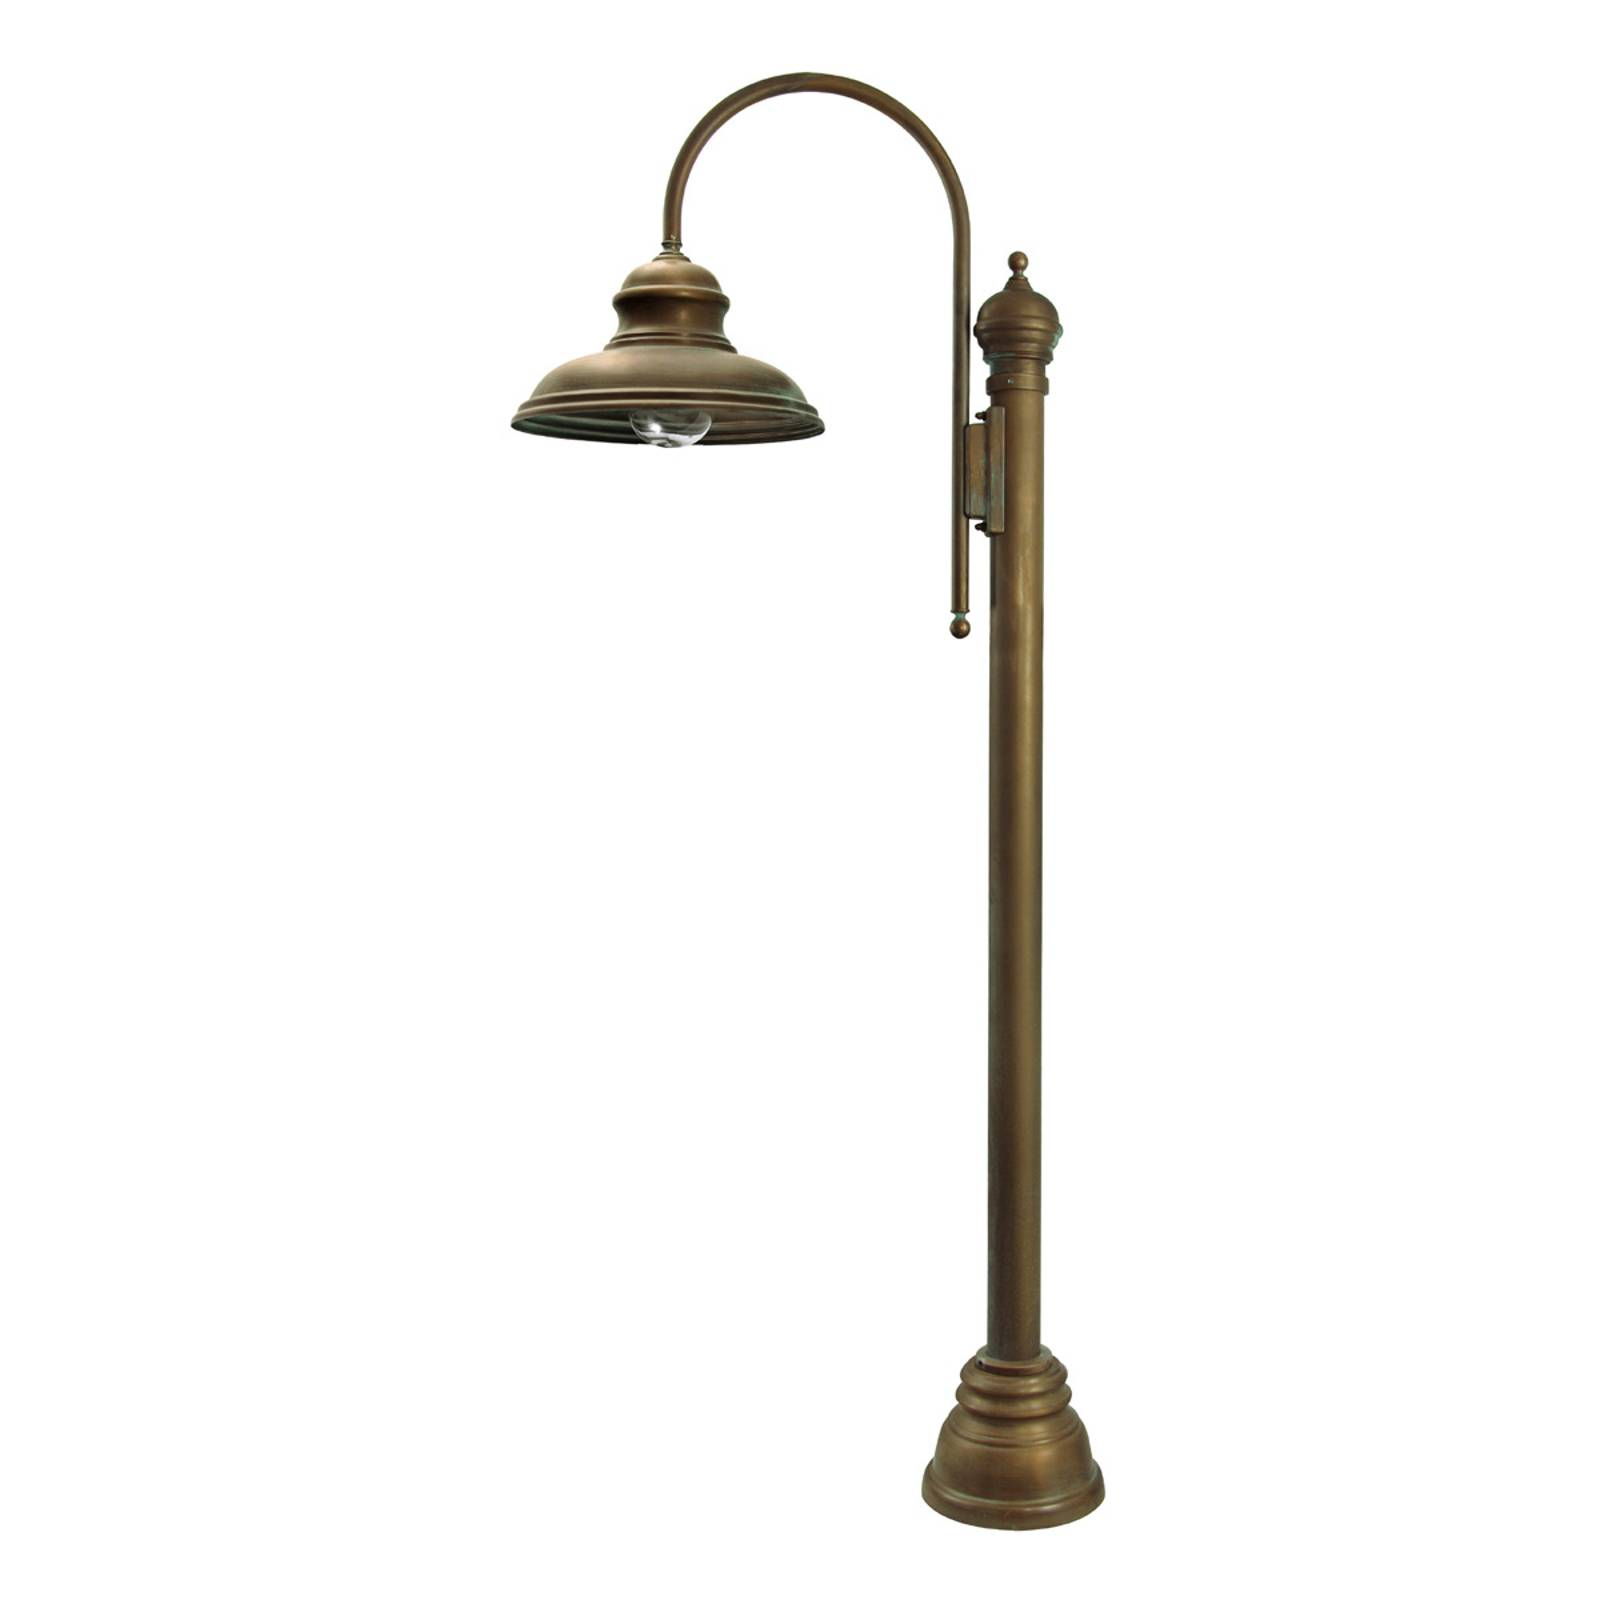 Classic path light LUCA 155 cm from MORETTI